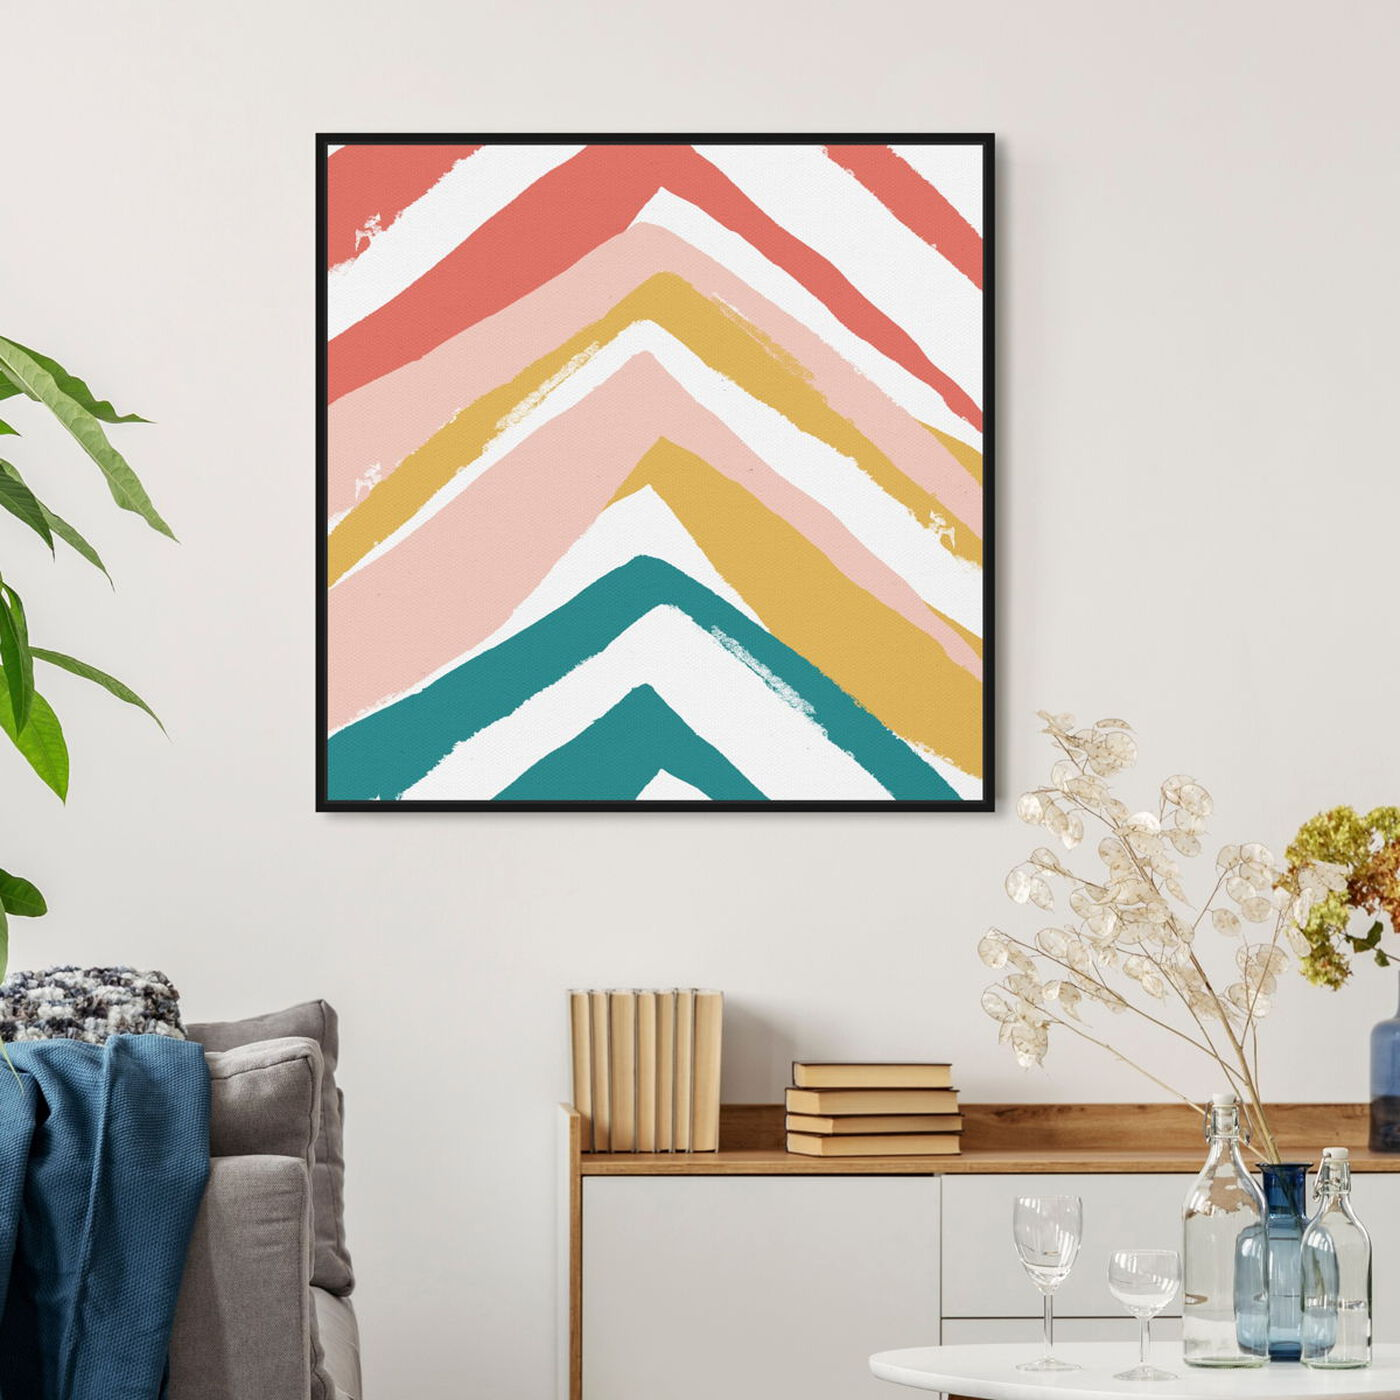 Hanging view of Mid Century Pyramids featuring abstract and paint art.